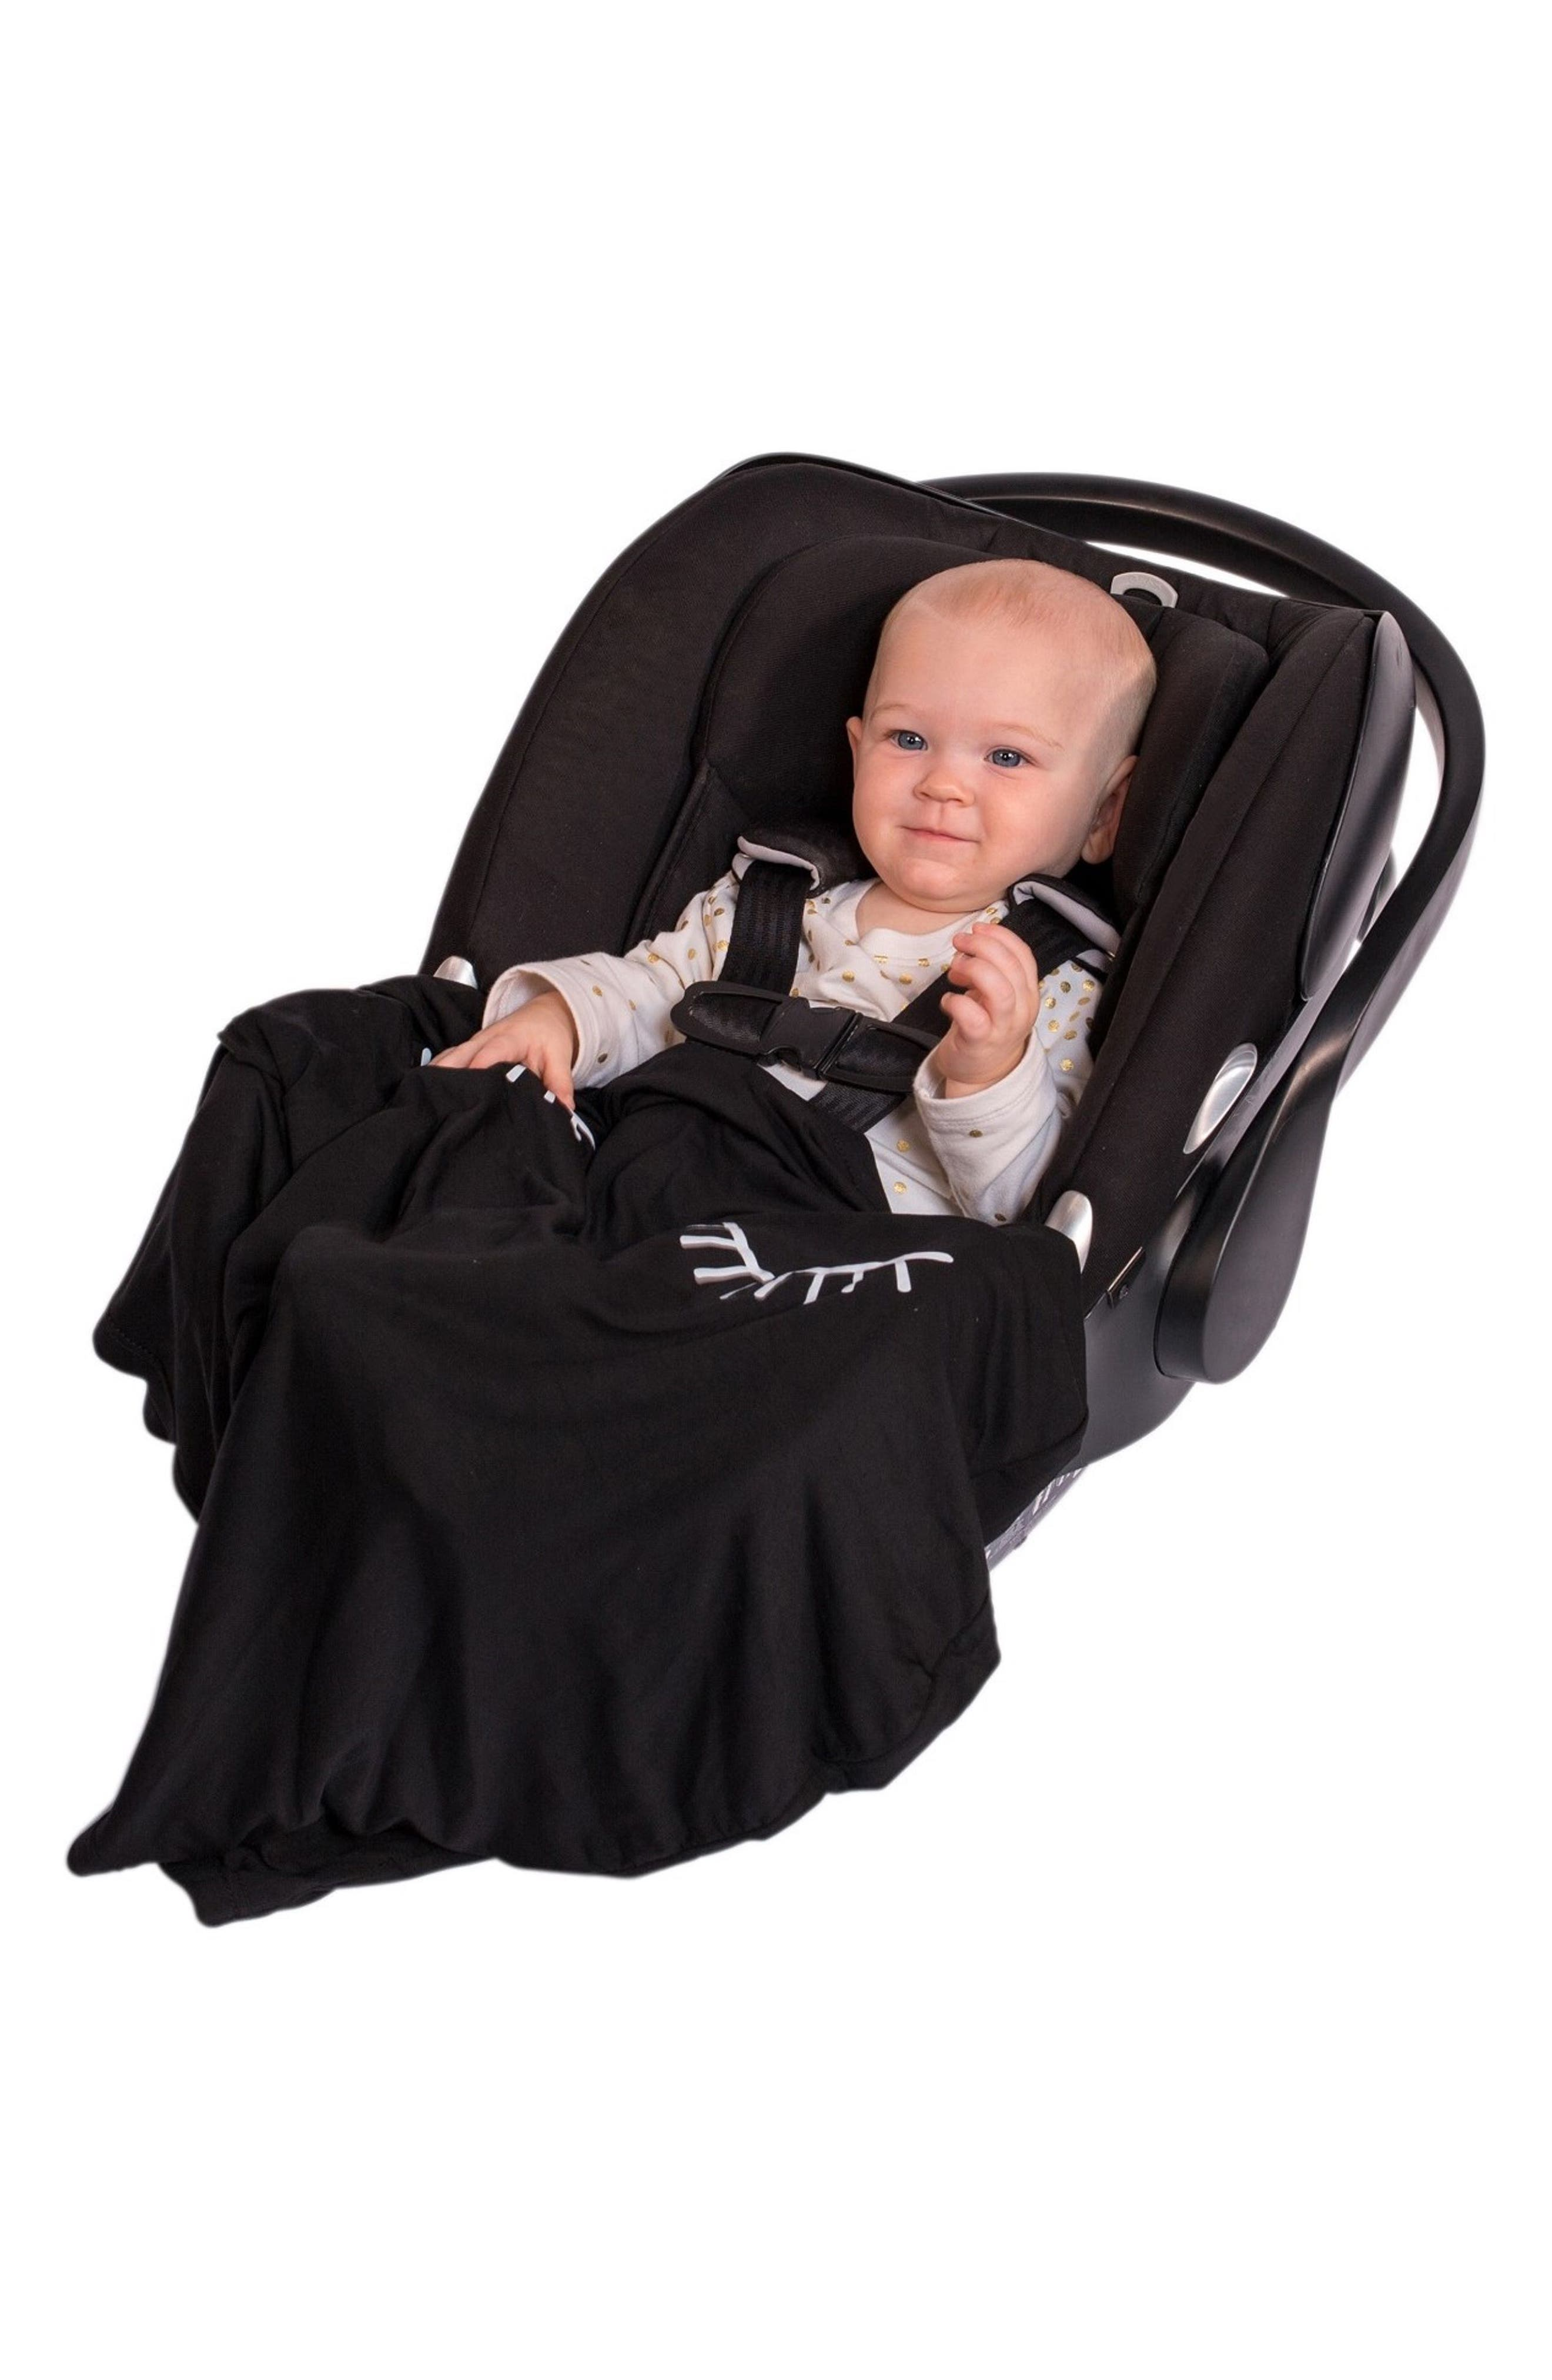 5-in-1 Car Seat Cover,                             Alternate thumbnail 10, color,                             Black Lashes